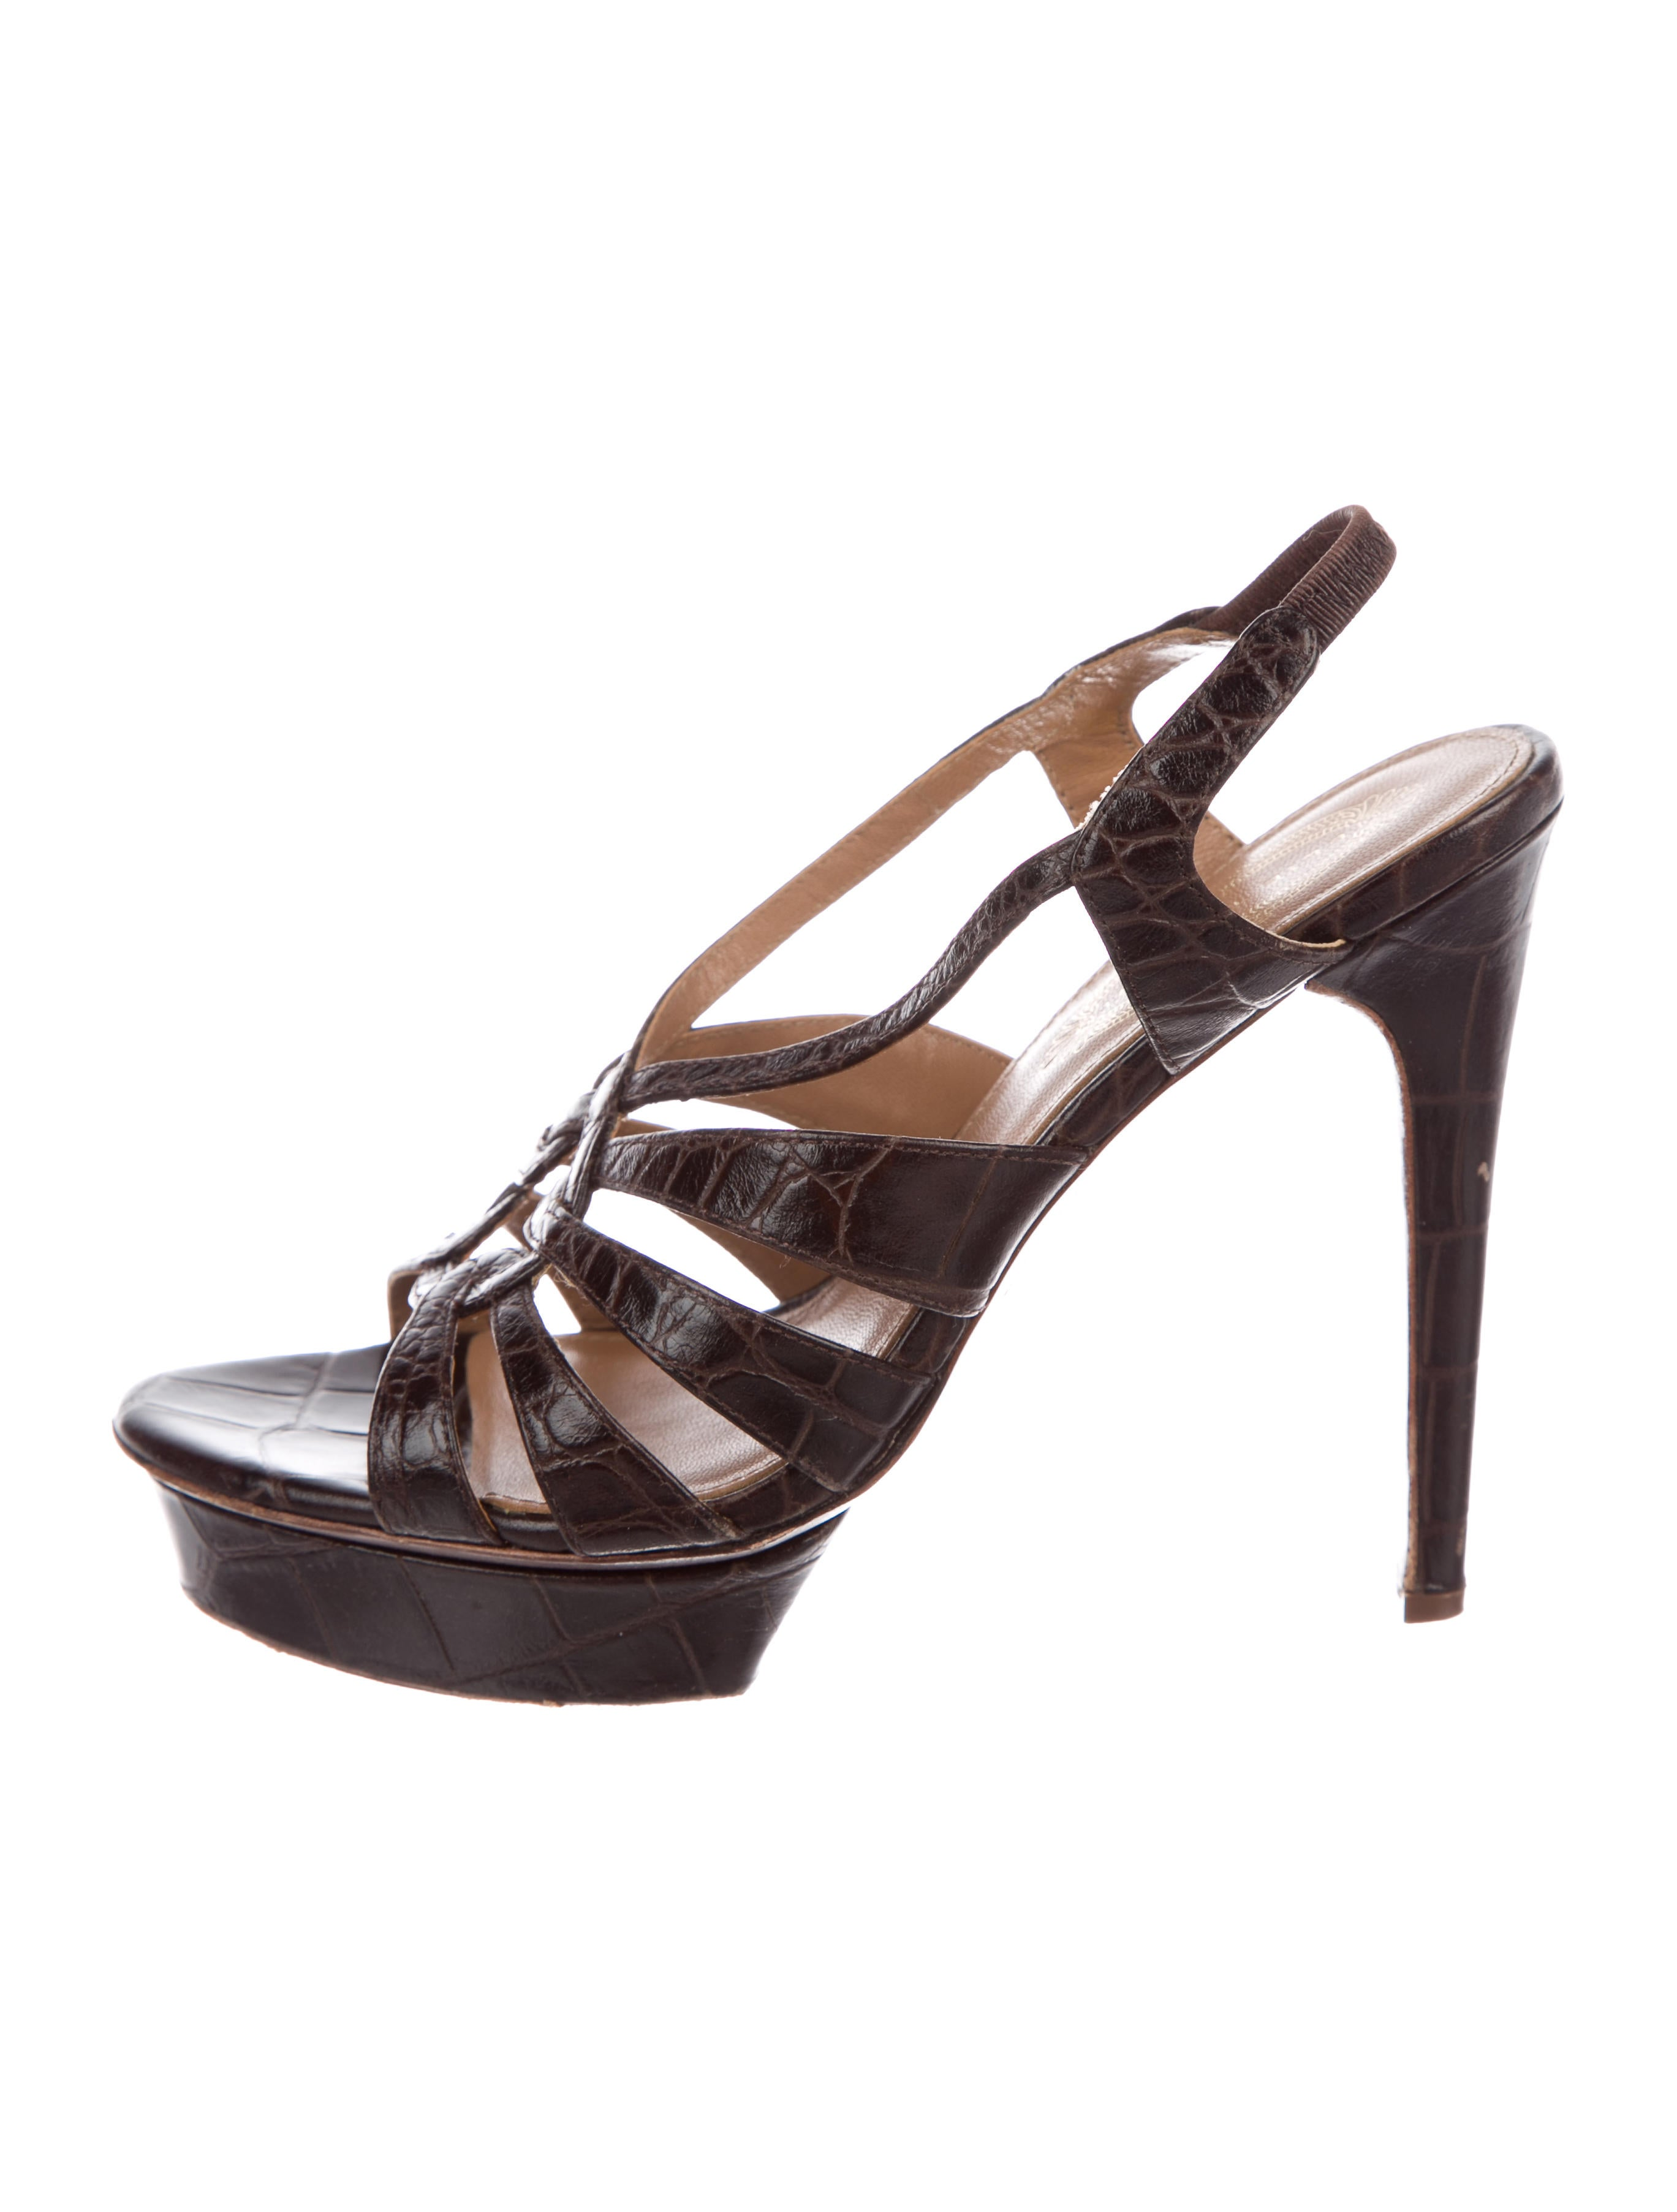 Elie Tahari Embossed Platform Sandals discount pay with paypal cheap online QcHiVVj